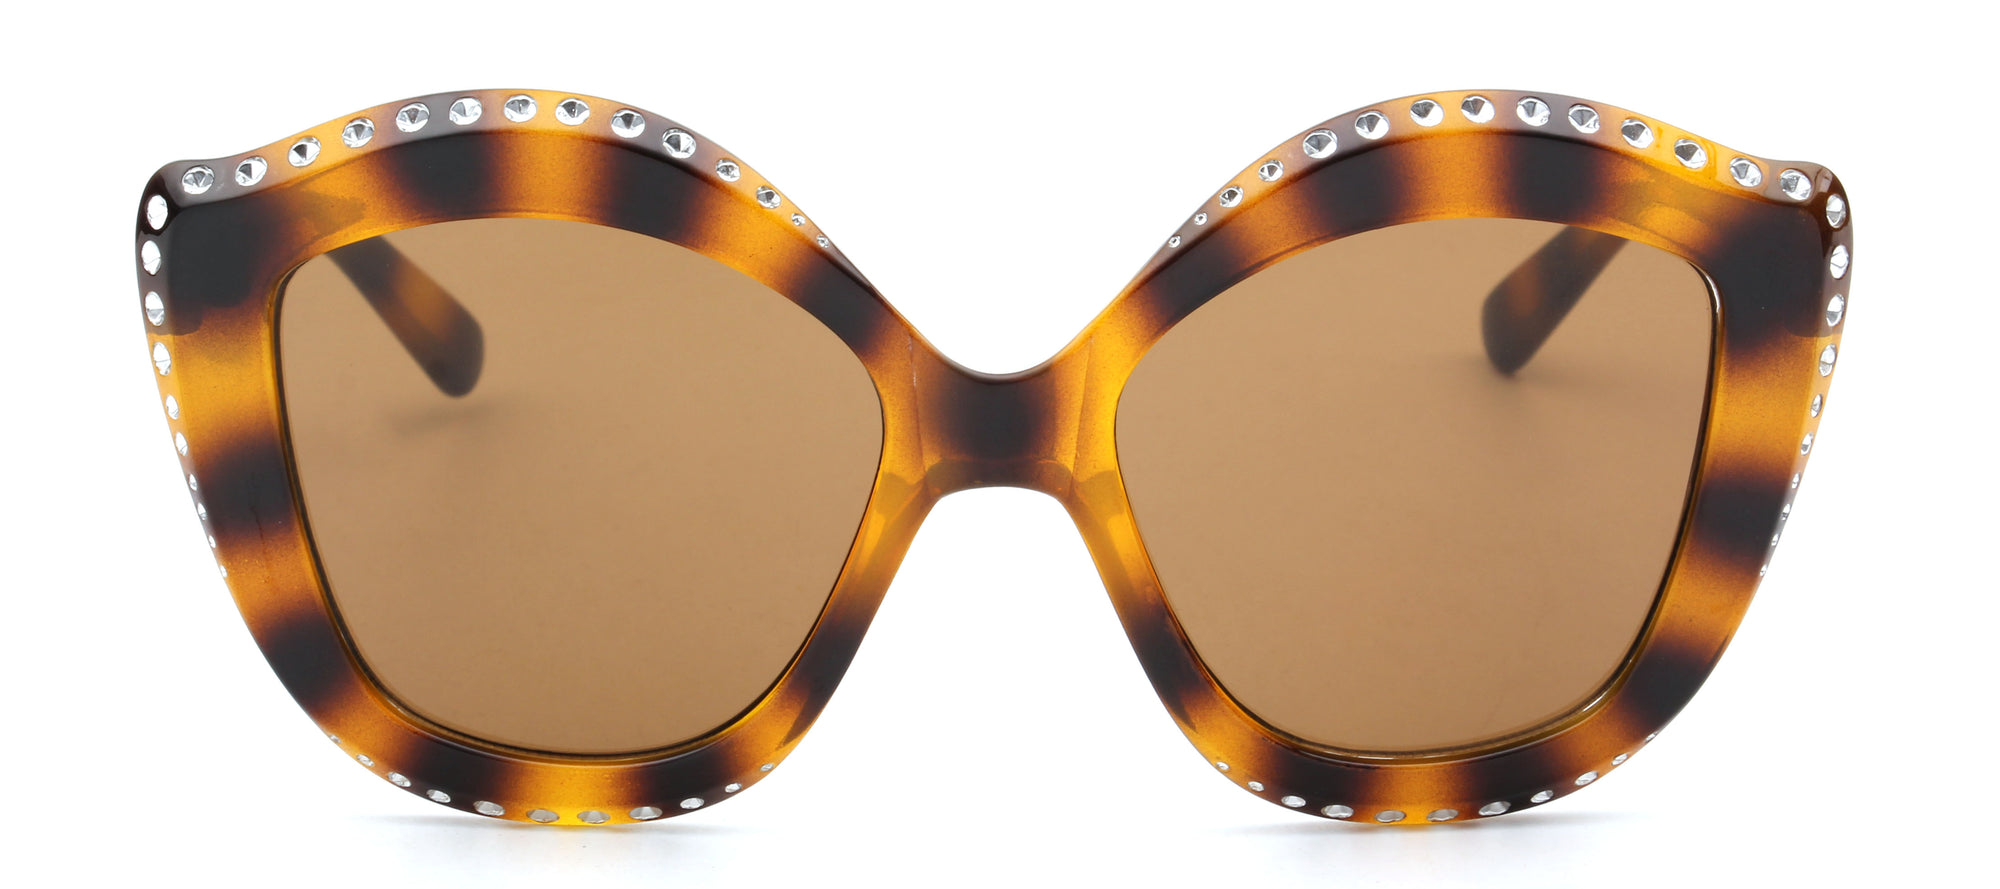 S1092 - Women Oversized Round Cat Eye Fashion Sunglasses - Iris Fashion Inc. | Wholesale Sunglasses and Glasses